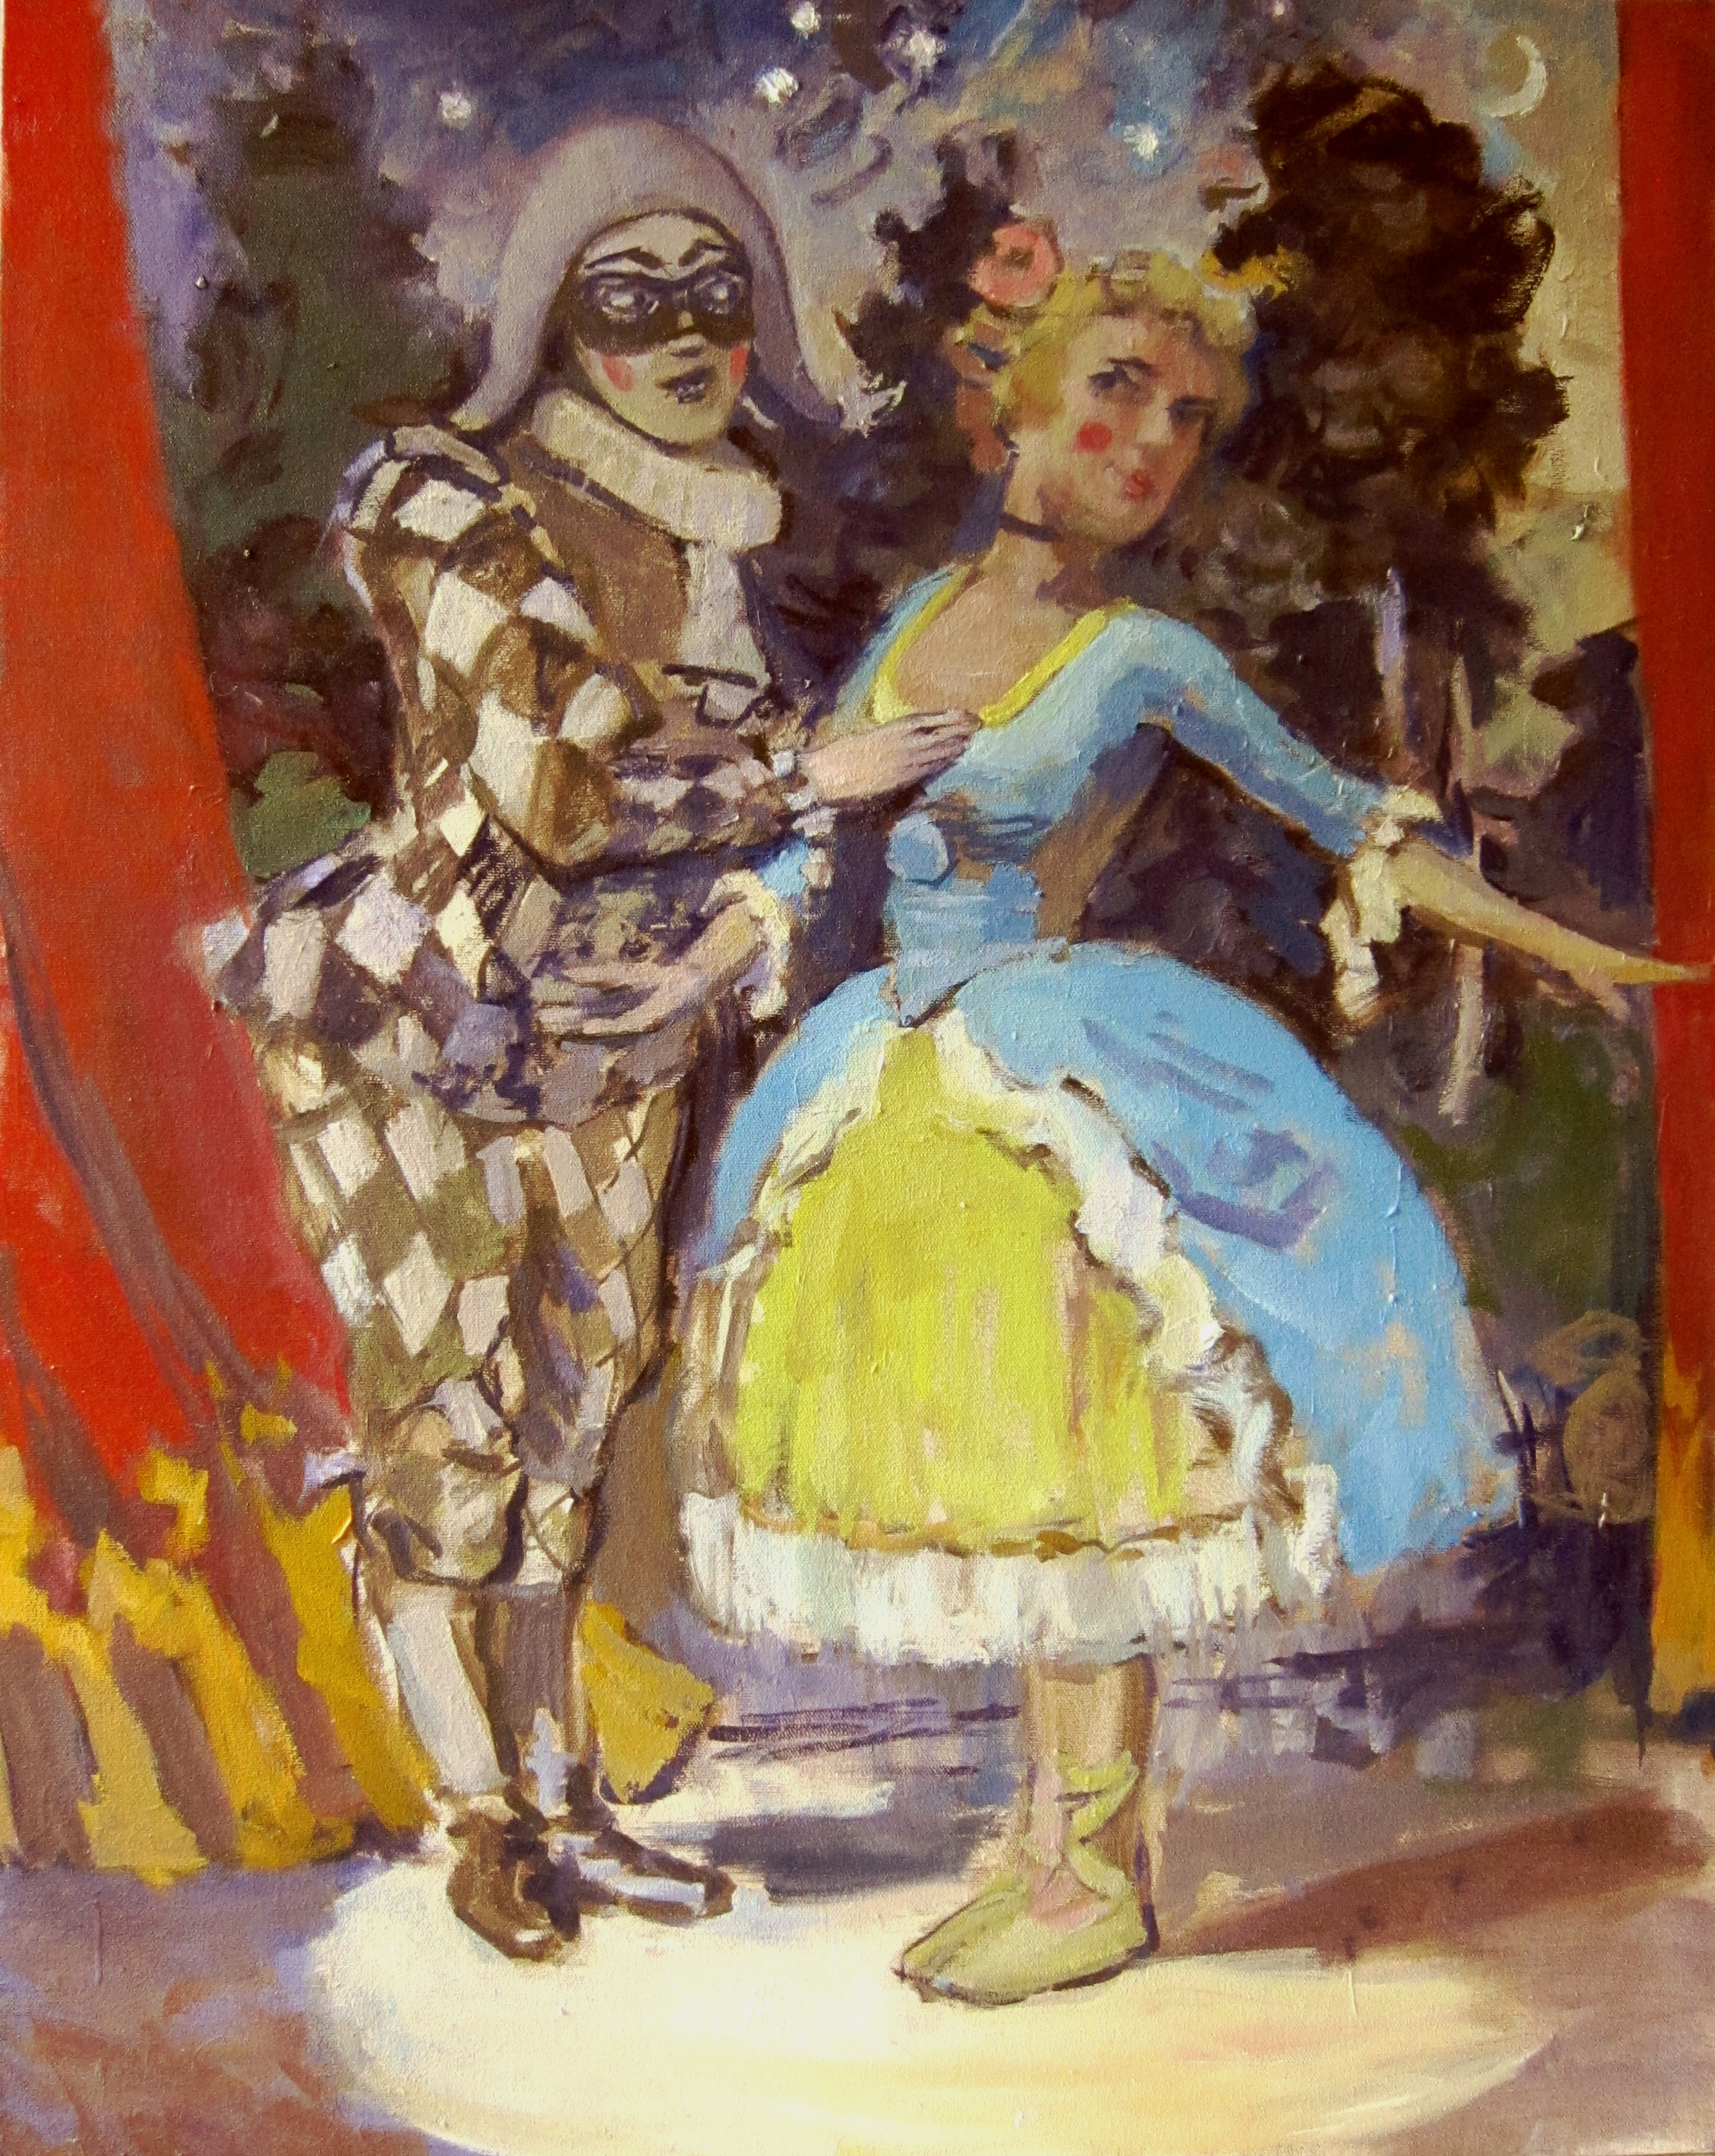 Harlequin and Colombina